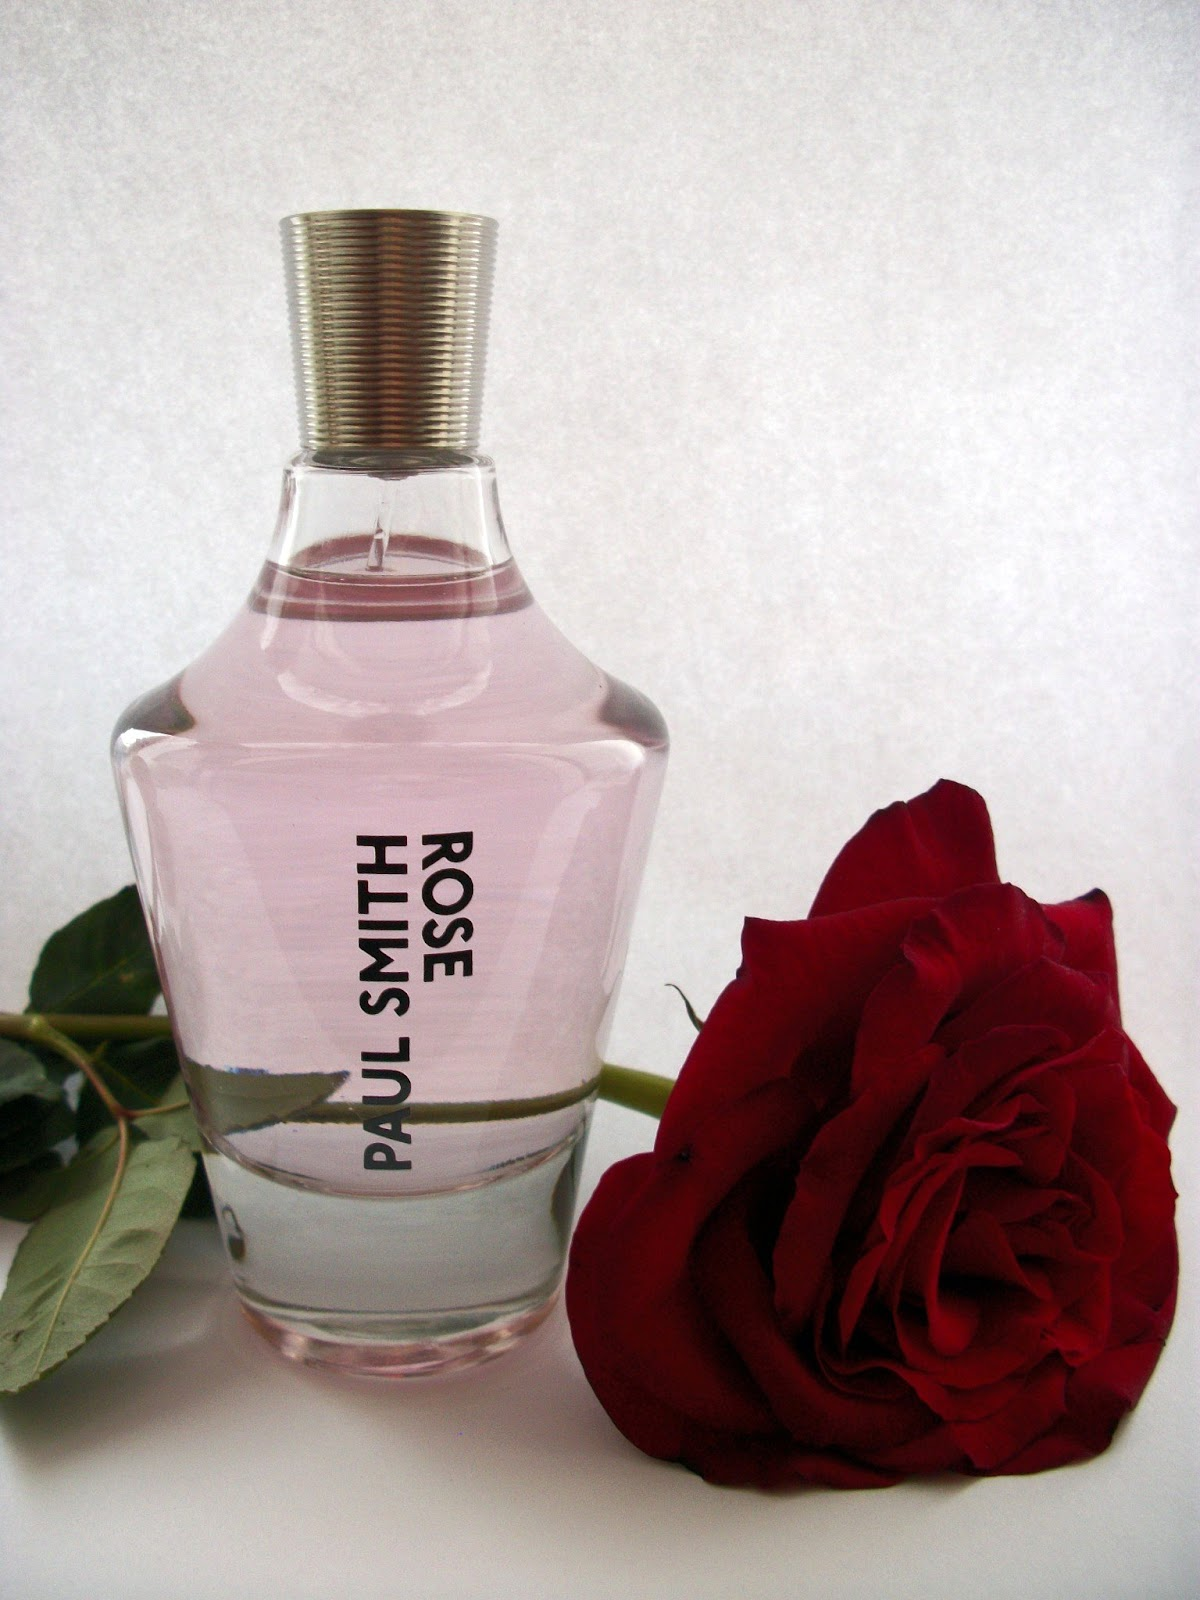 Paul Smith Rose EDP